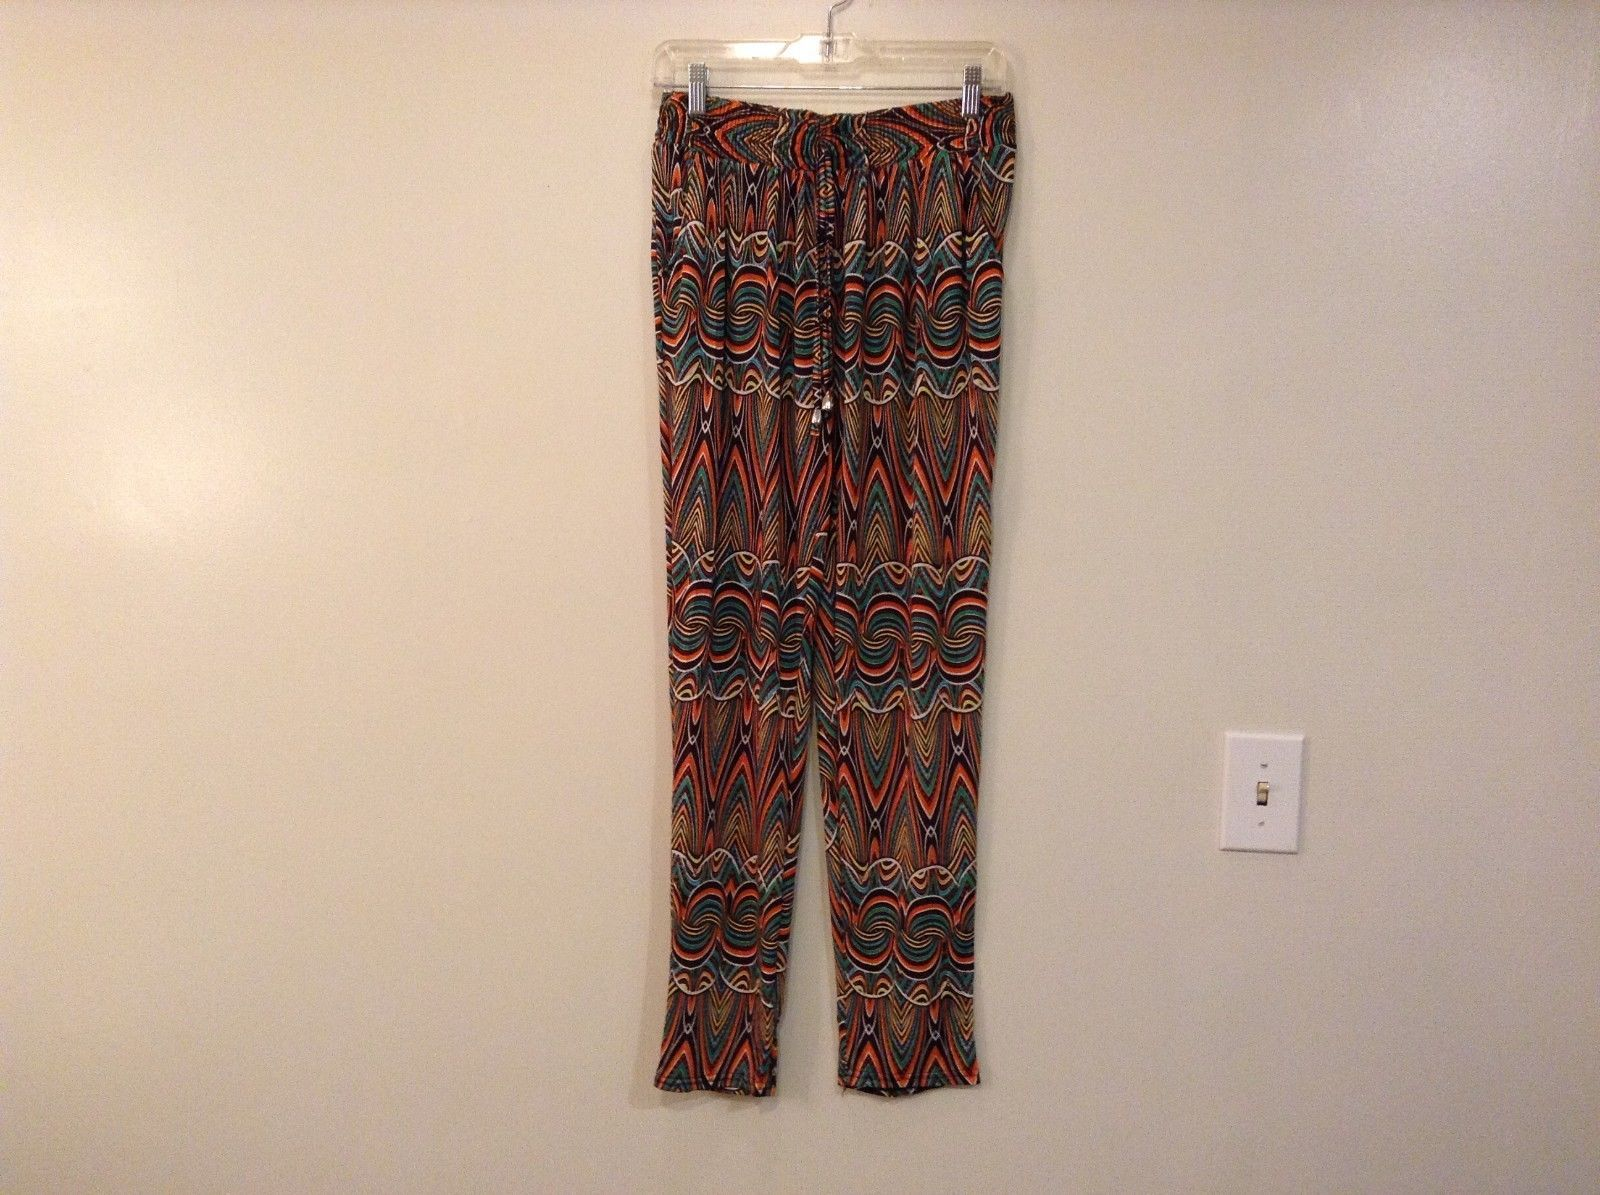 Printed wide leg pants, one size fits most w pockets elastic waist open bottom